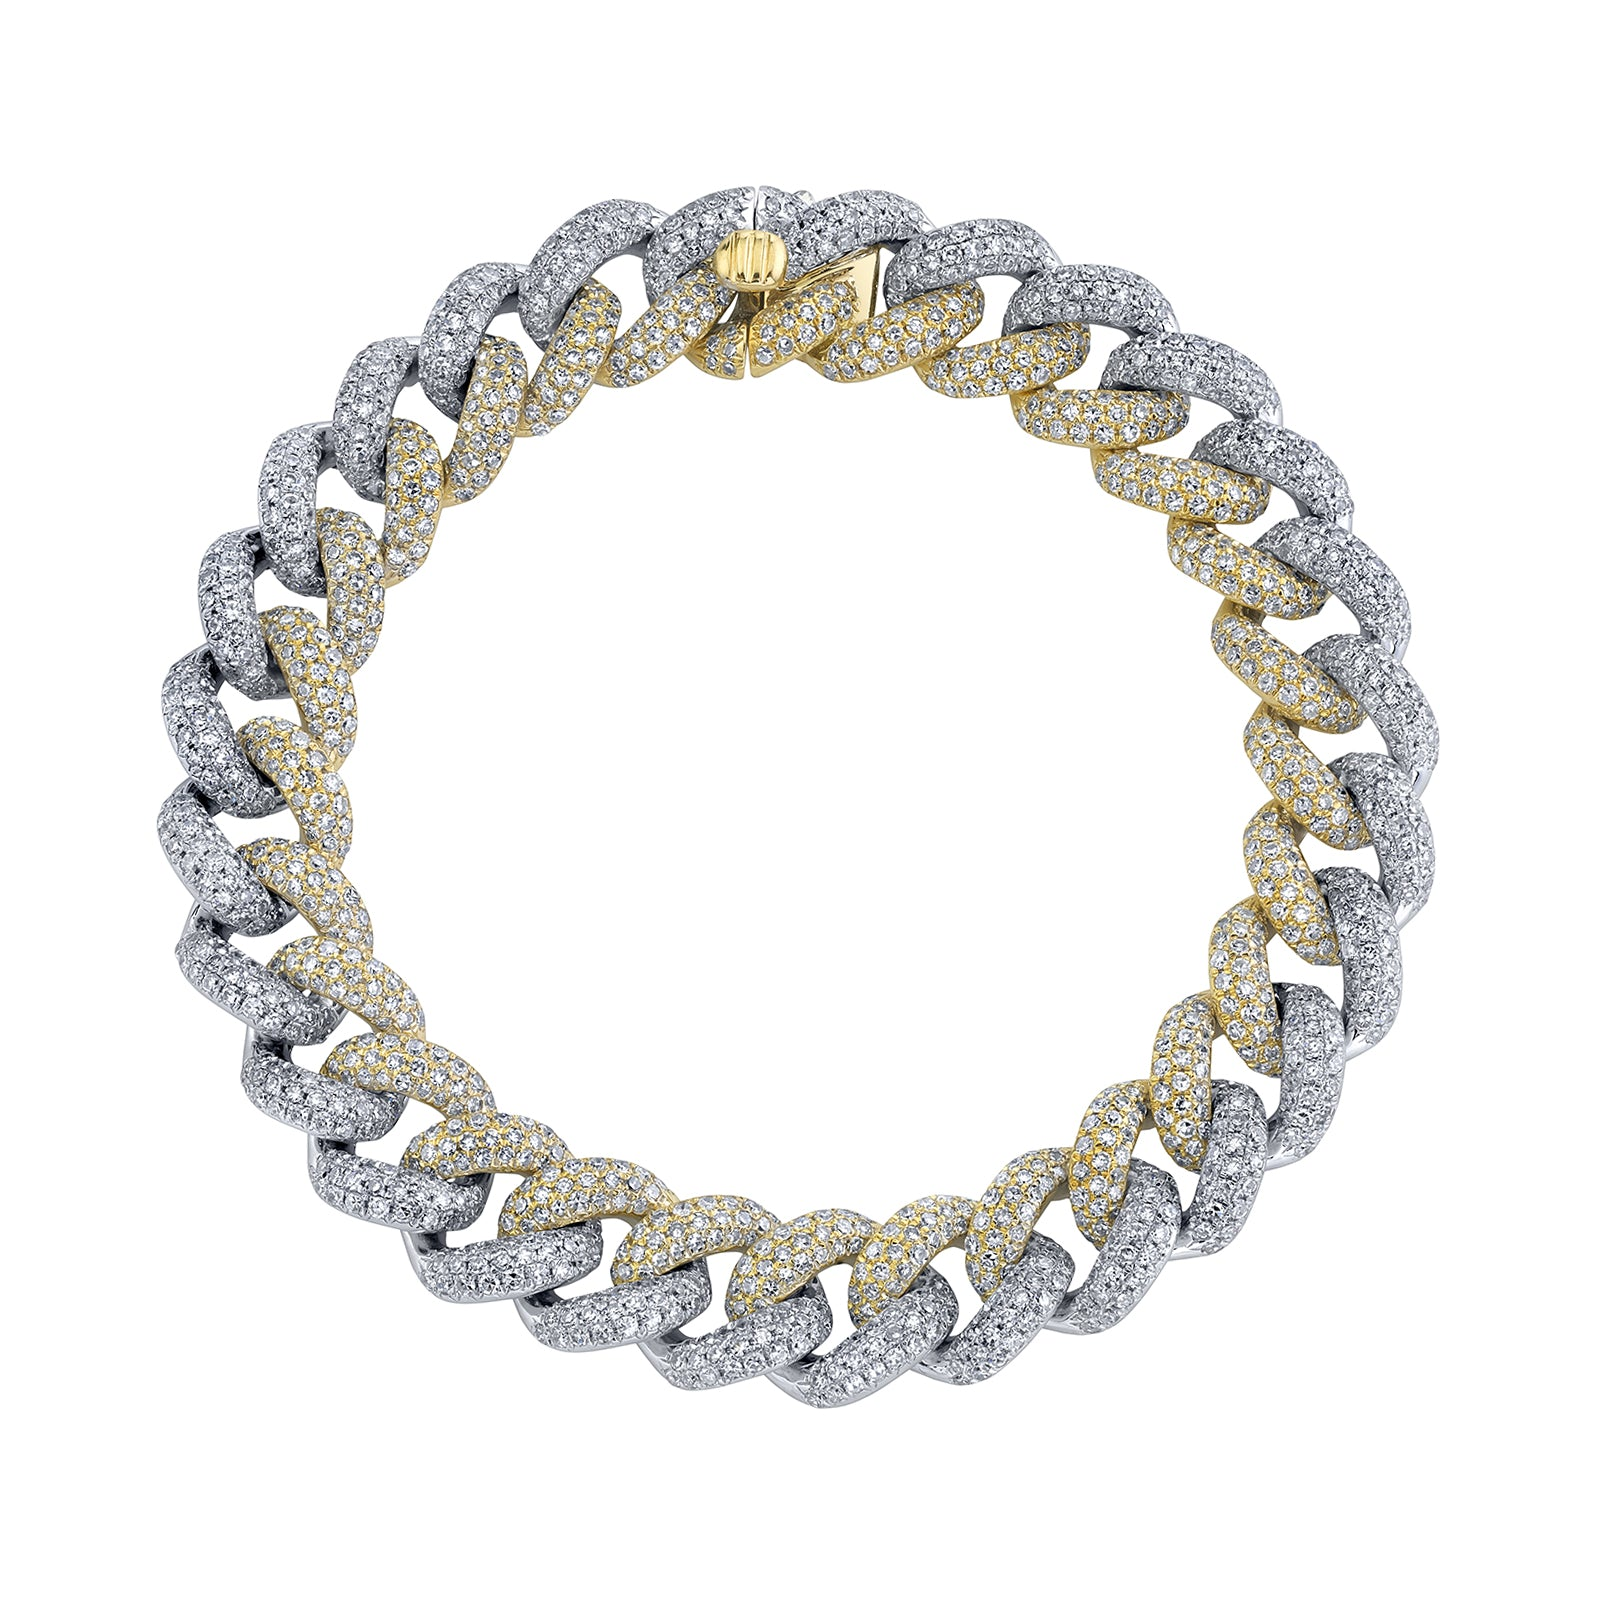 Shay Two Tone Pave Diamond Link Bracelet - Bracelets - Broken English Jewelry